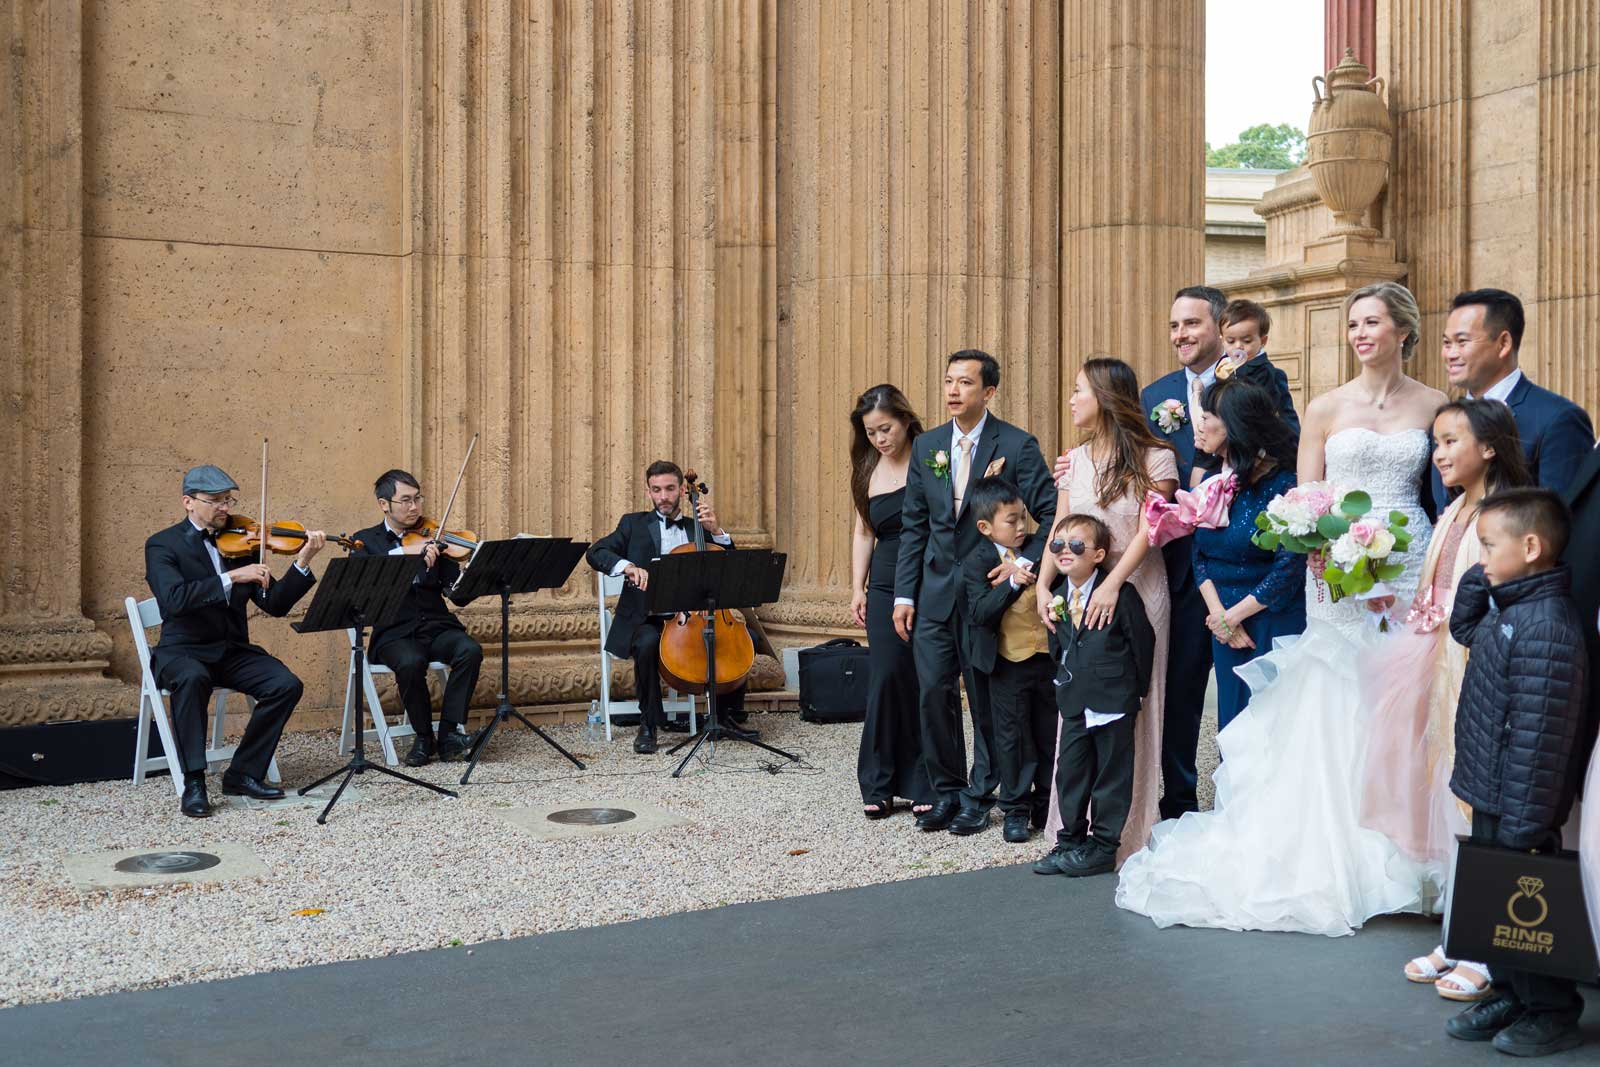 Palace-of-Fine-Arts-wedding.jpg